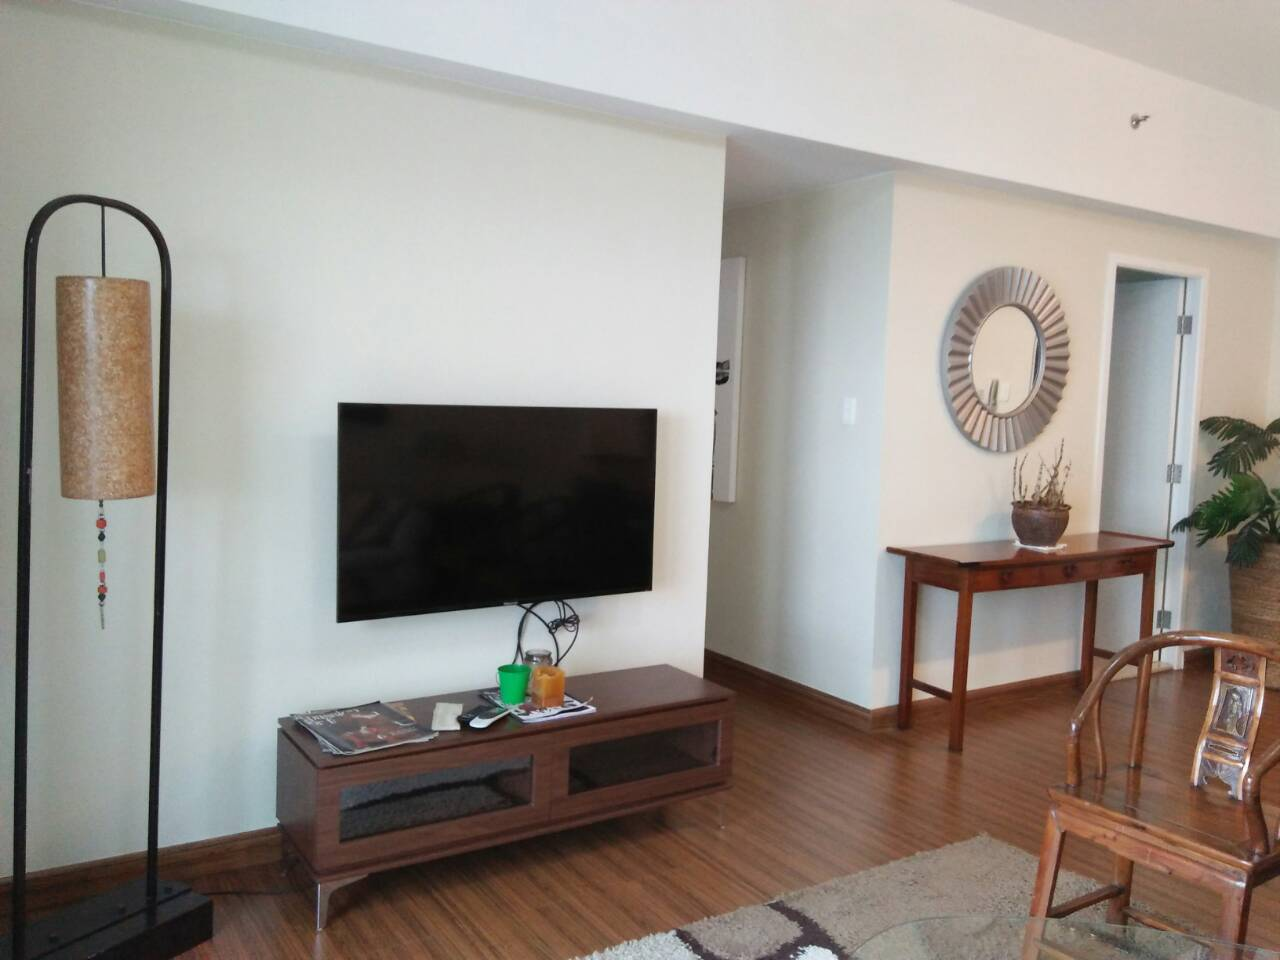 2 Bedrooms Condo, Shang Salcedo Place Living Area View 1